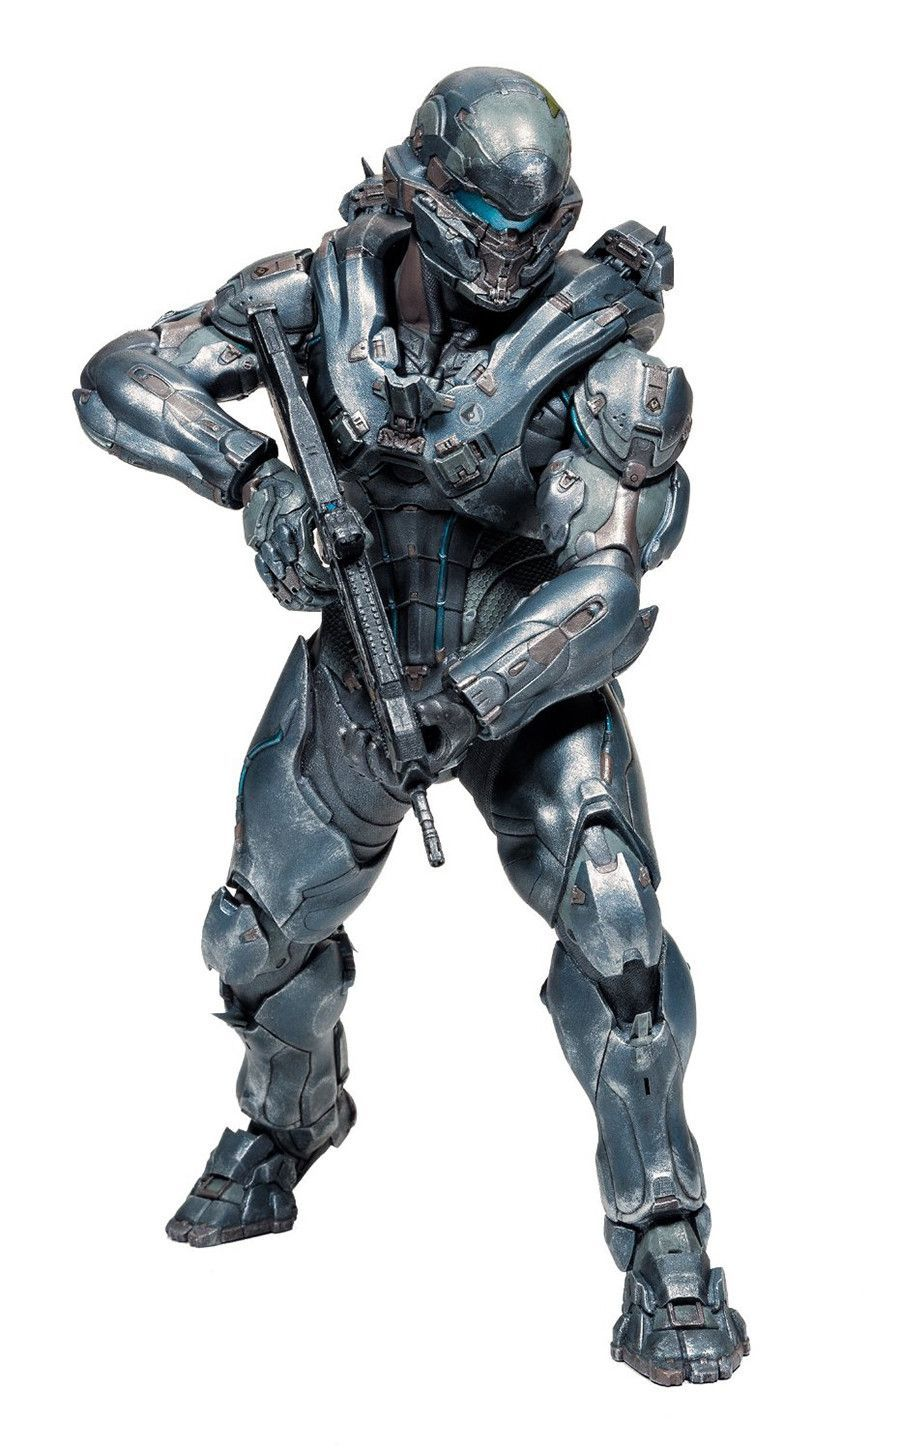 Halo 5 10 Deluxe Figure Spartan Locke Helmeted Halo 5 Halo